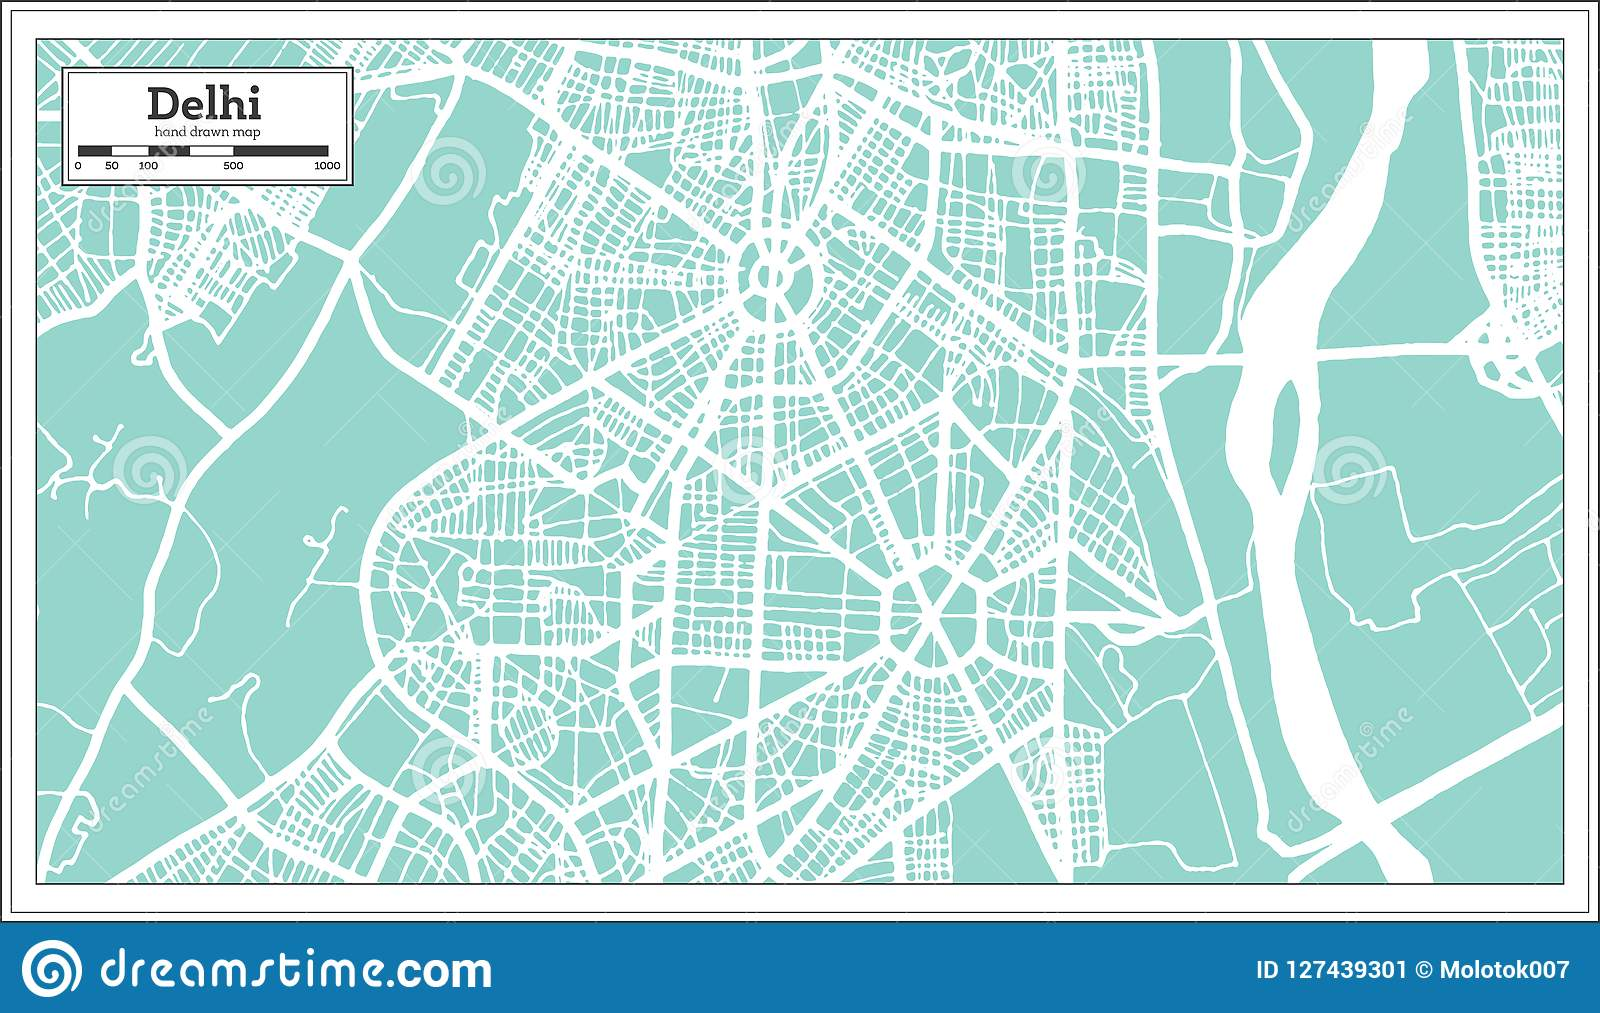 Delhi India City Map In Retro Style. Outline Map. Stock Vector ... on